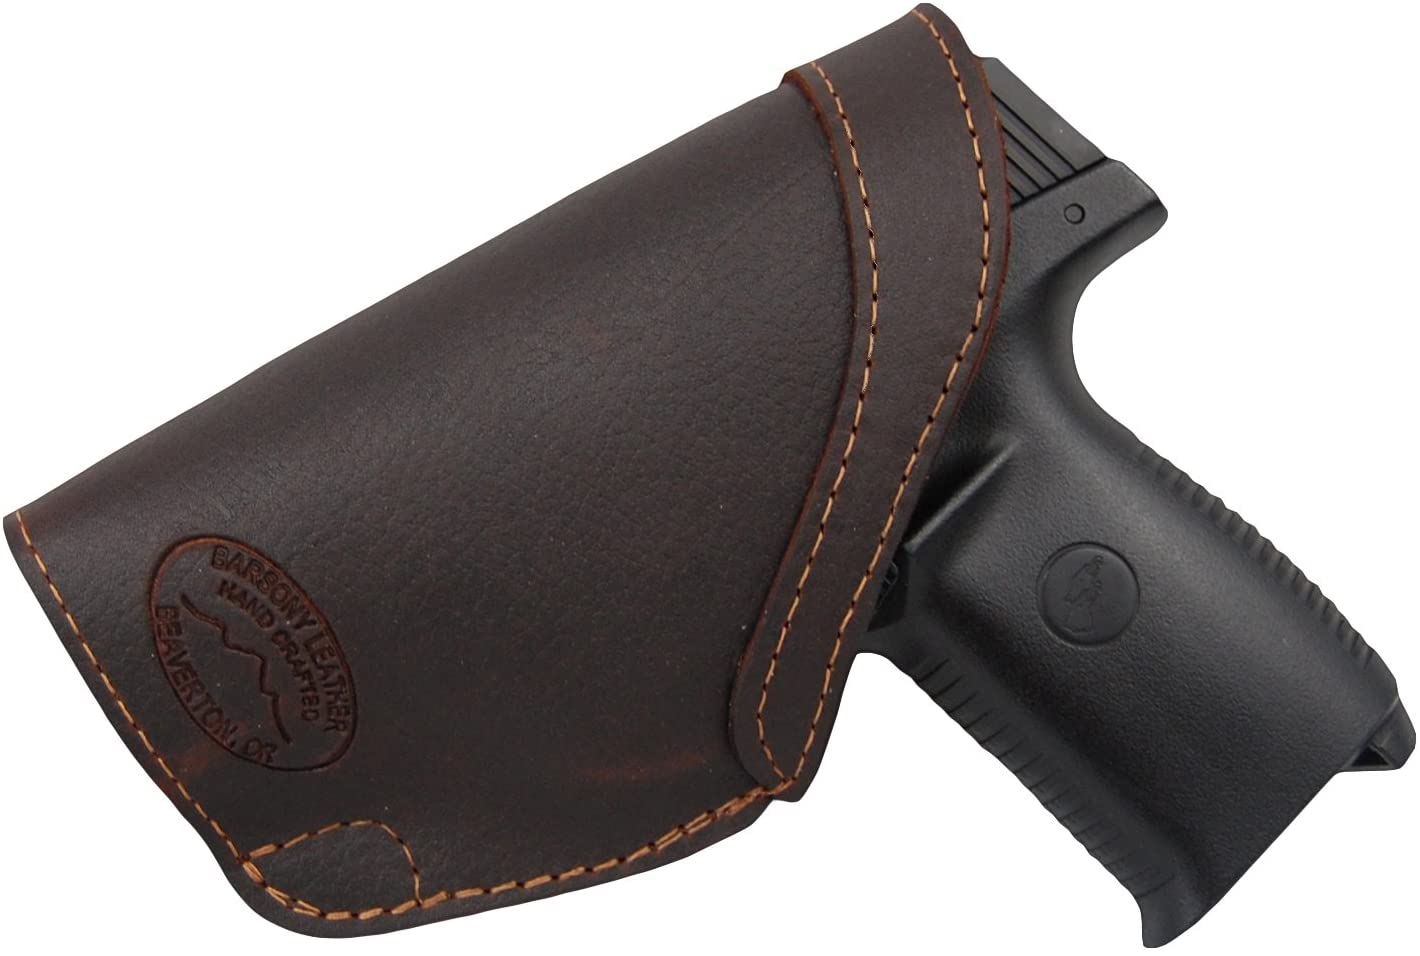 Barsony New Brown Leather Inside The Waistband Holster for Ruger SR9C and SR40C with Laser